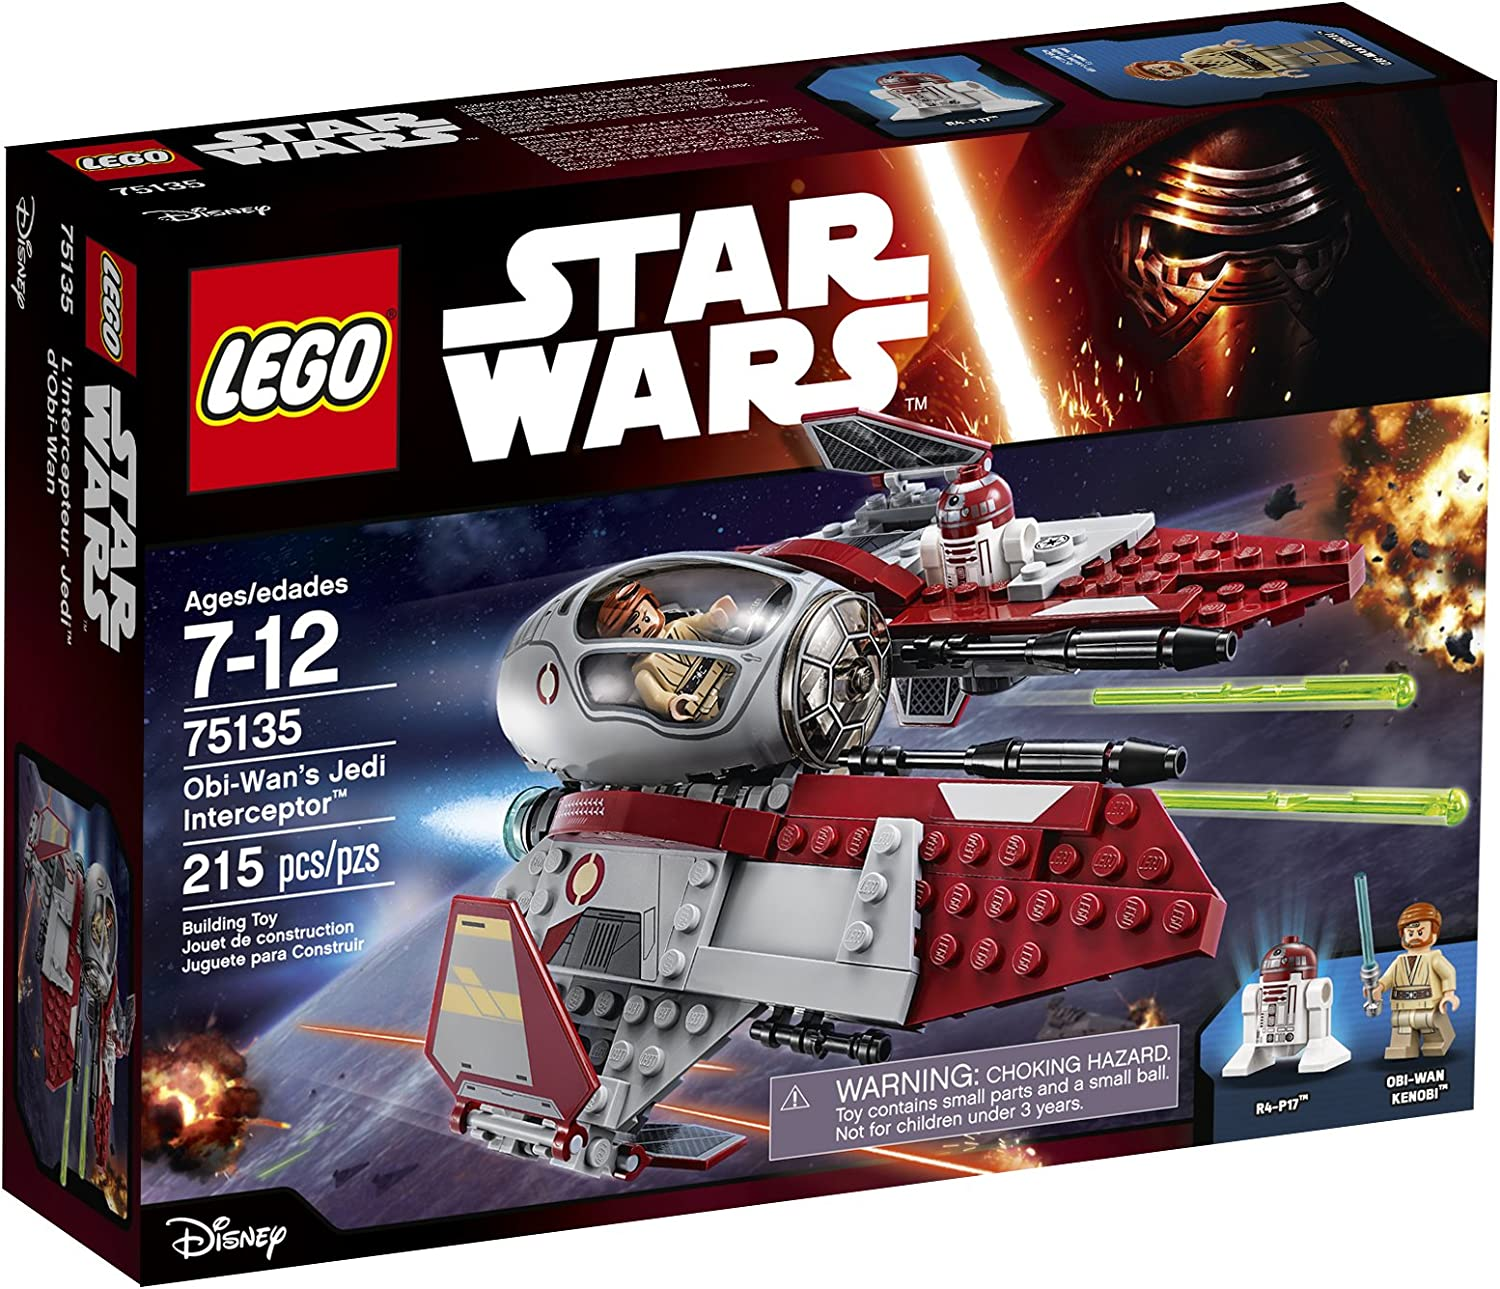 LEGO Star Wars Obi-Wanâ€s Jedi Interceptor 75135